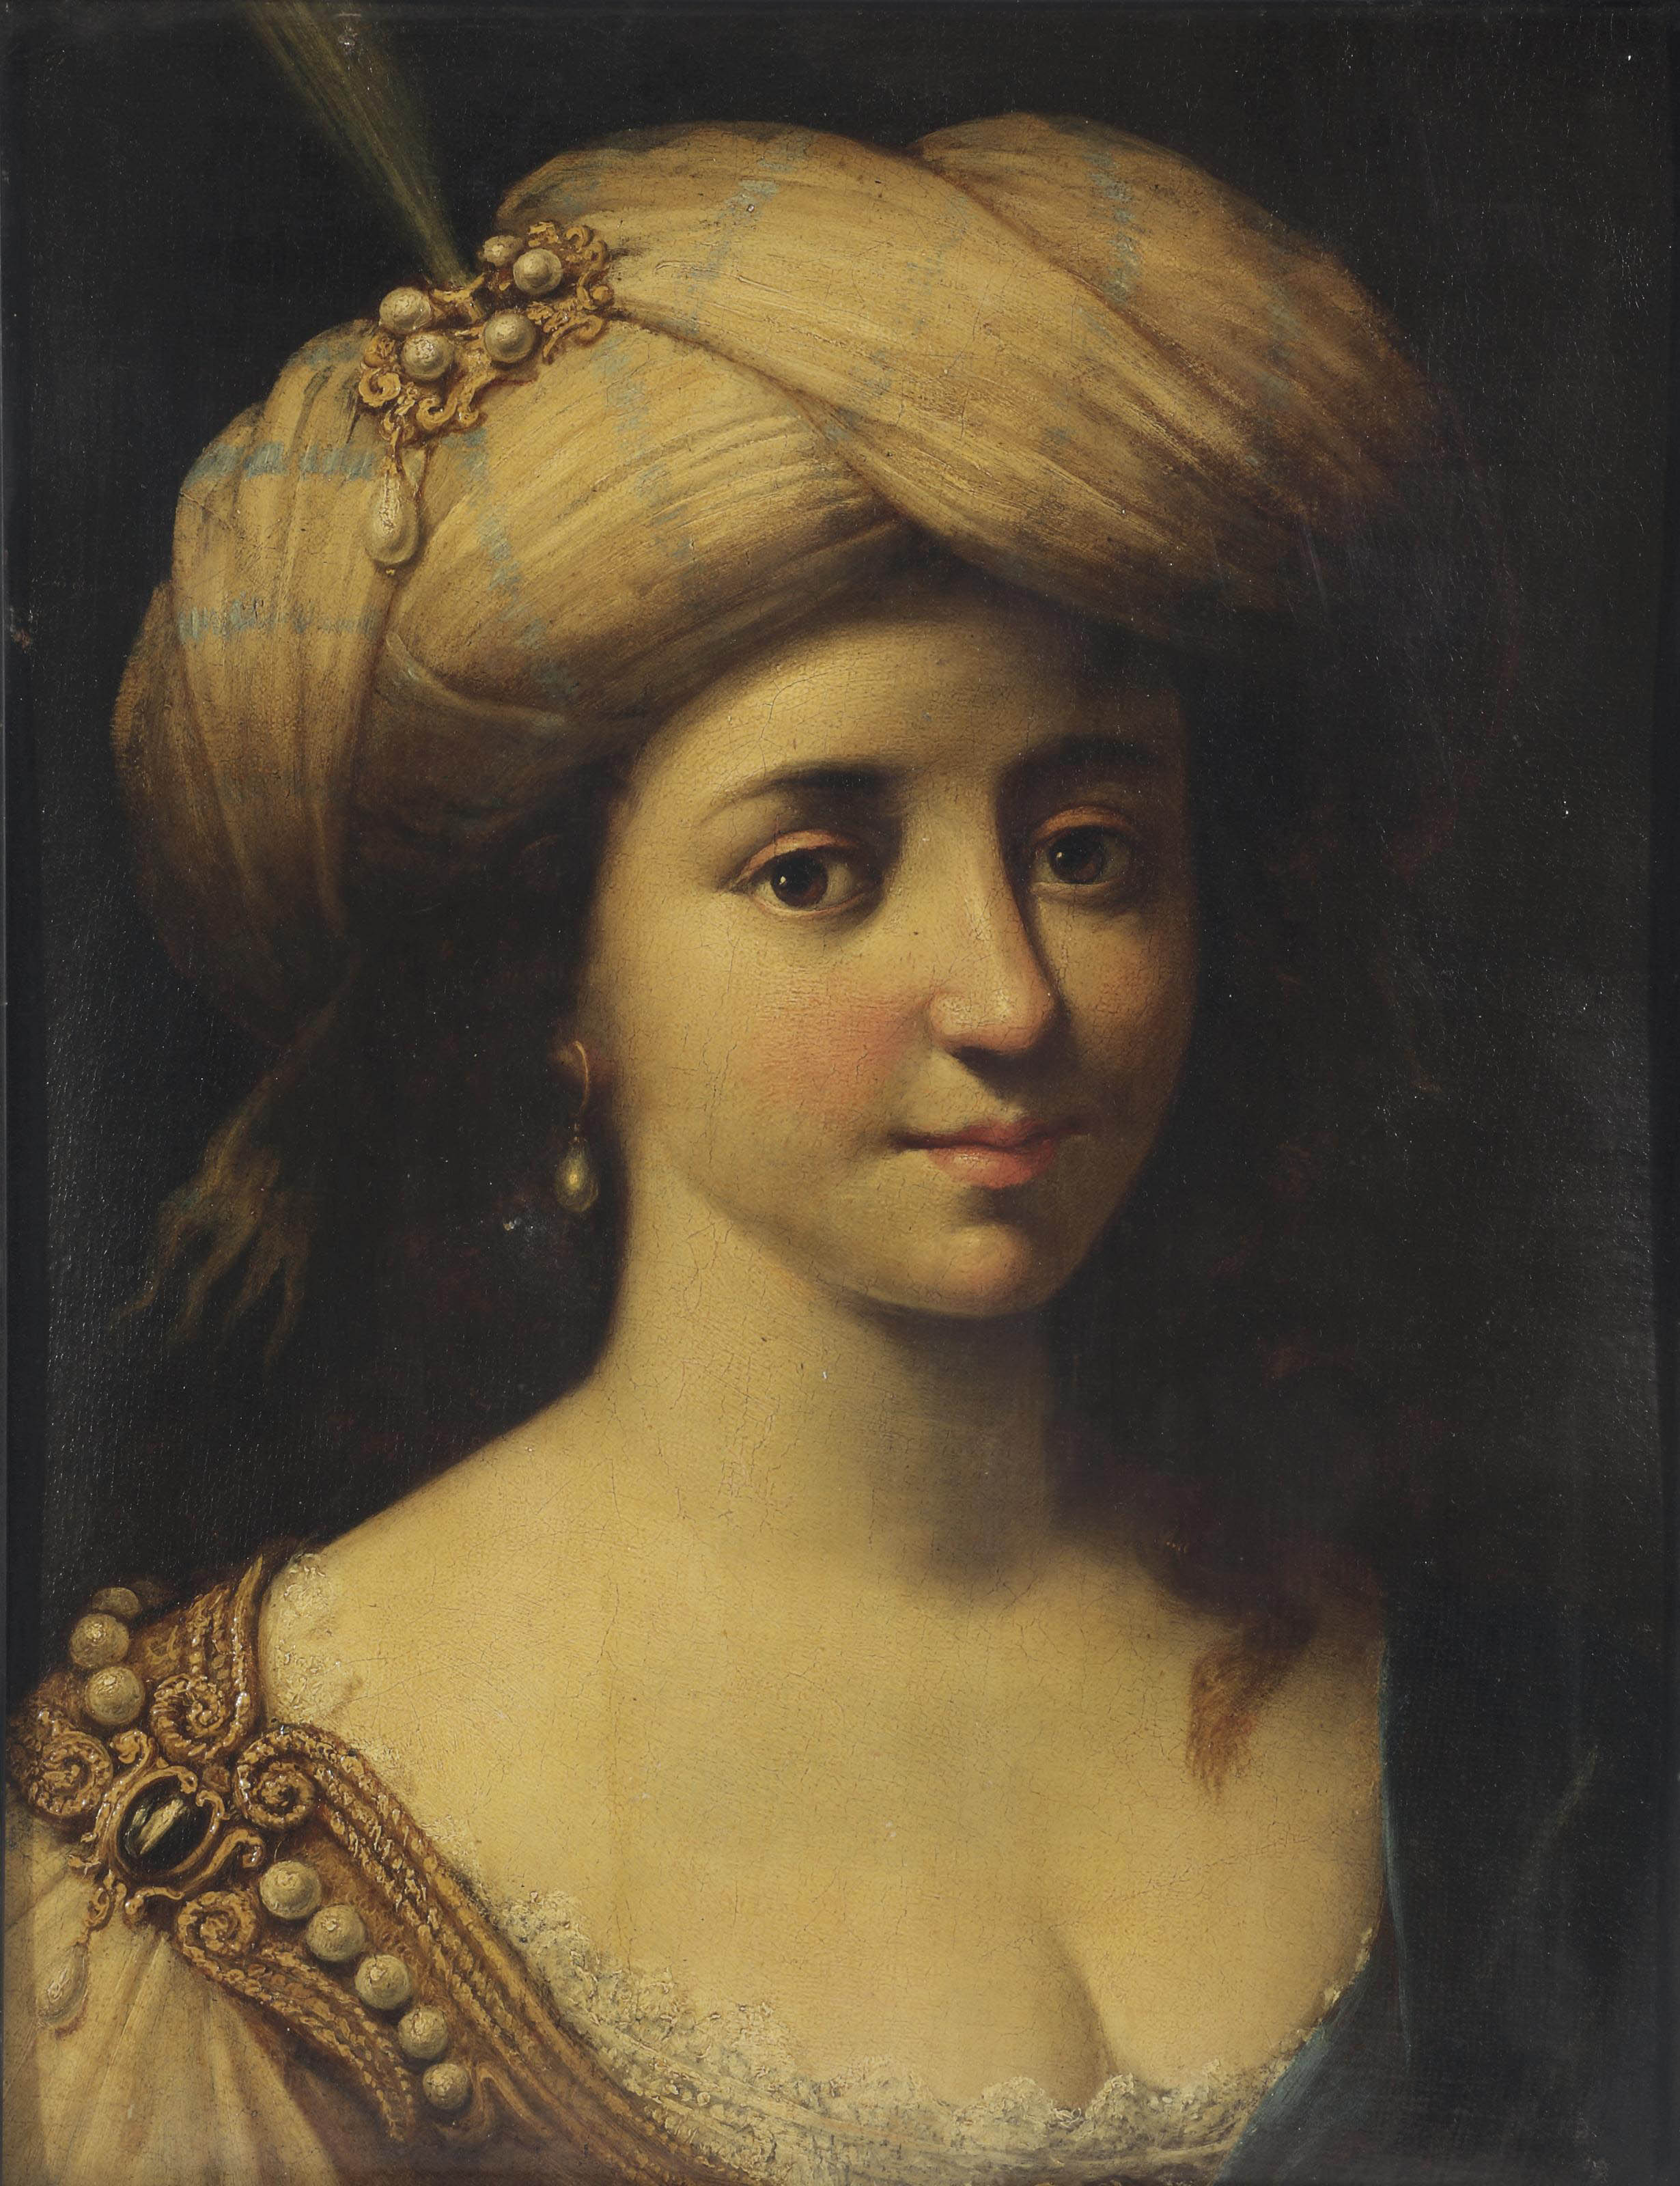 Head of a woman wearing a turban